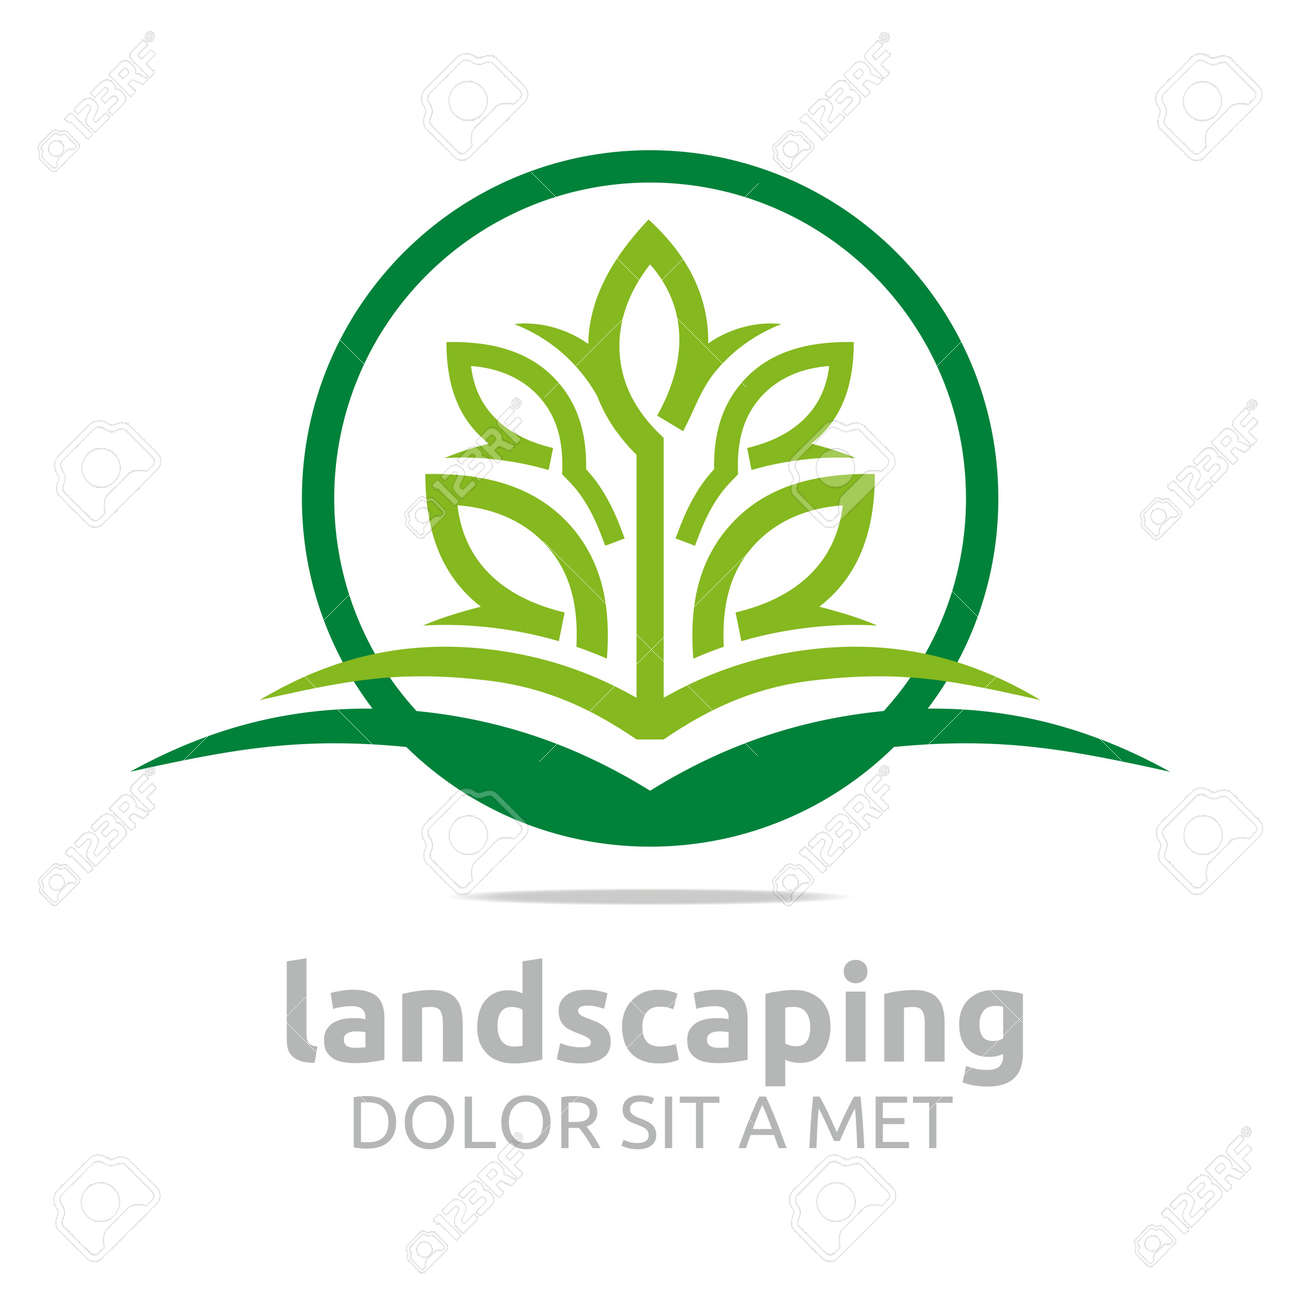 7 427 landscaping stock vector illustration and royalty free rh 123rf com free landscaping clipart images